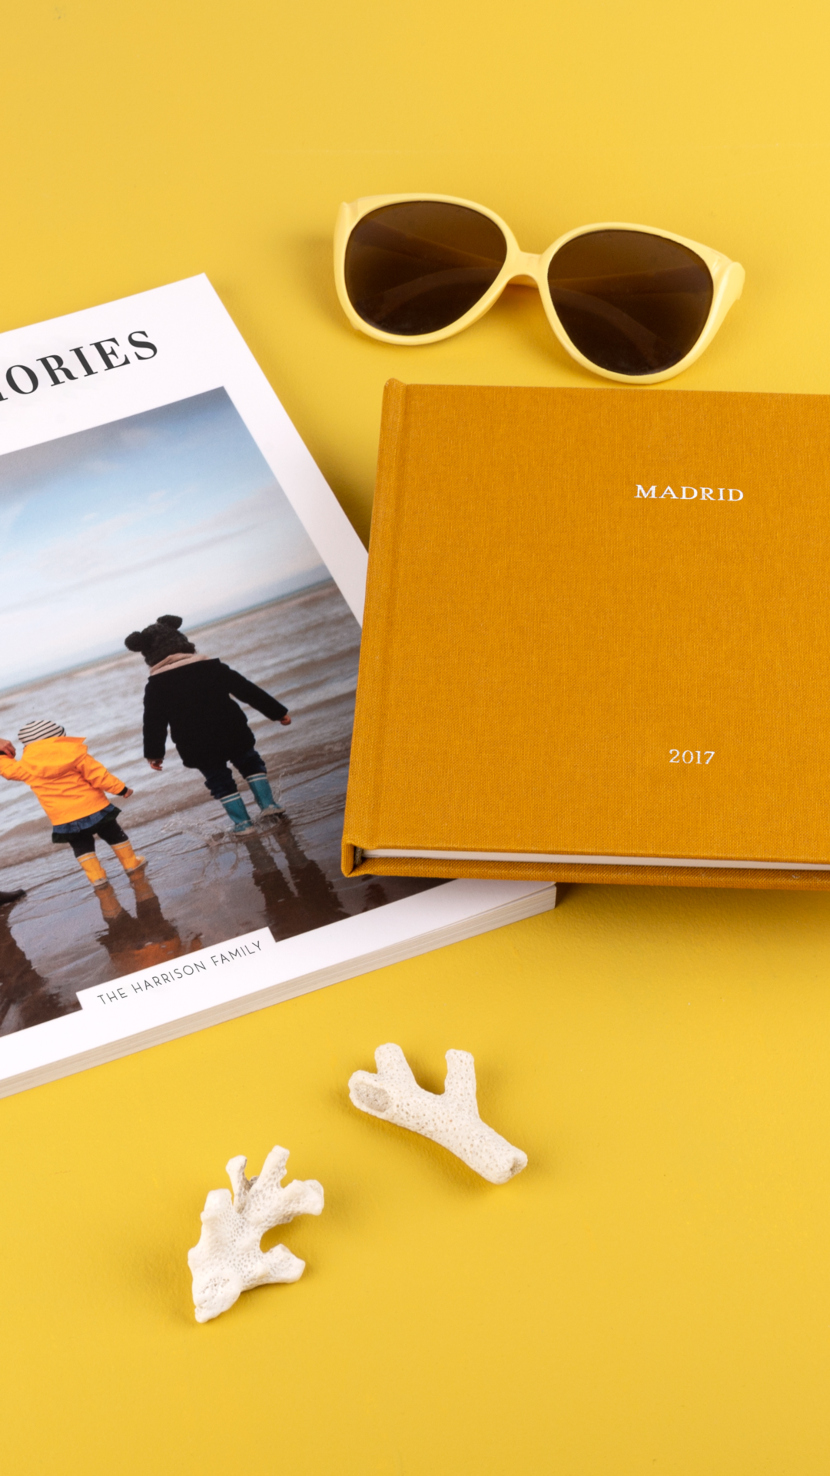 Make sure you record those precious travel memories to look back on with our Top 10 tips for capturing your family holiday with a travel photo book.